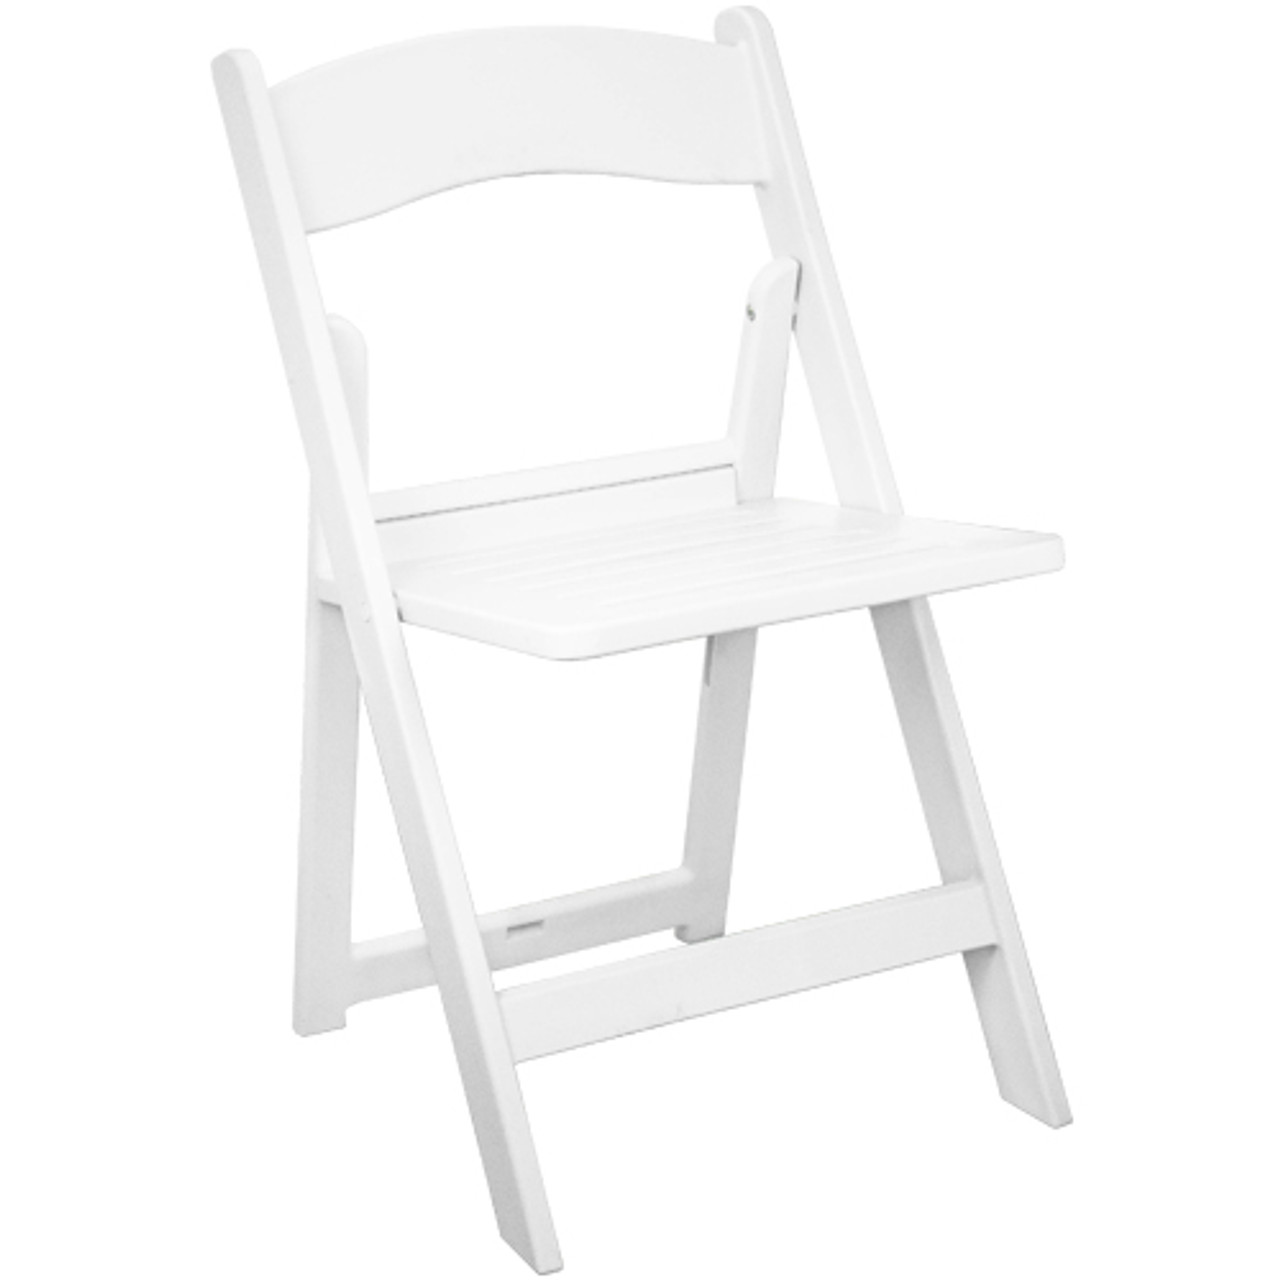 Advantage White Resin Folding Chairs With Slatted Seat White Plastic Folding Chairs For Sale